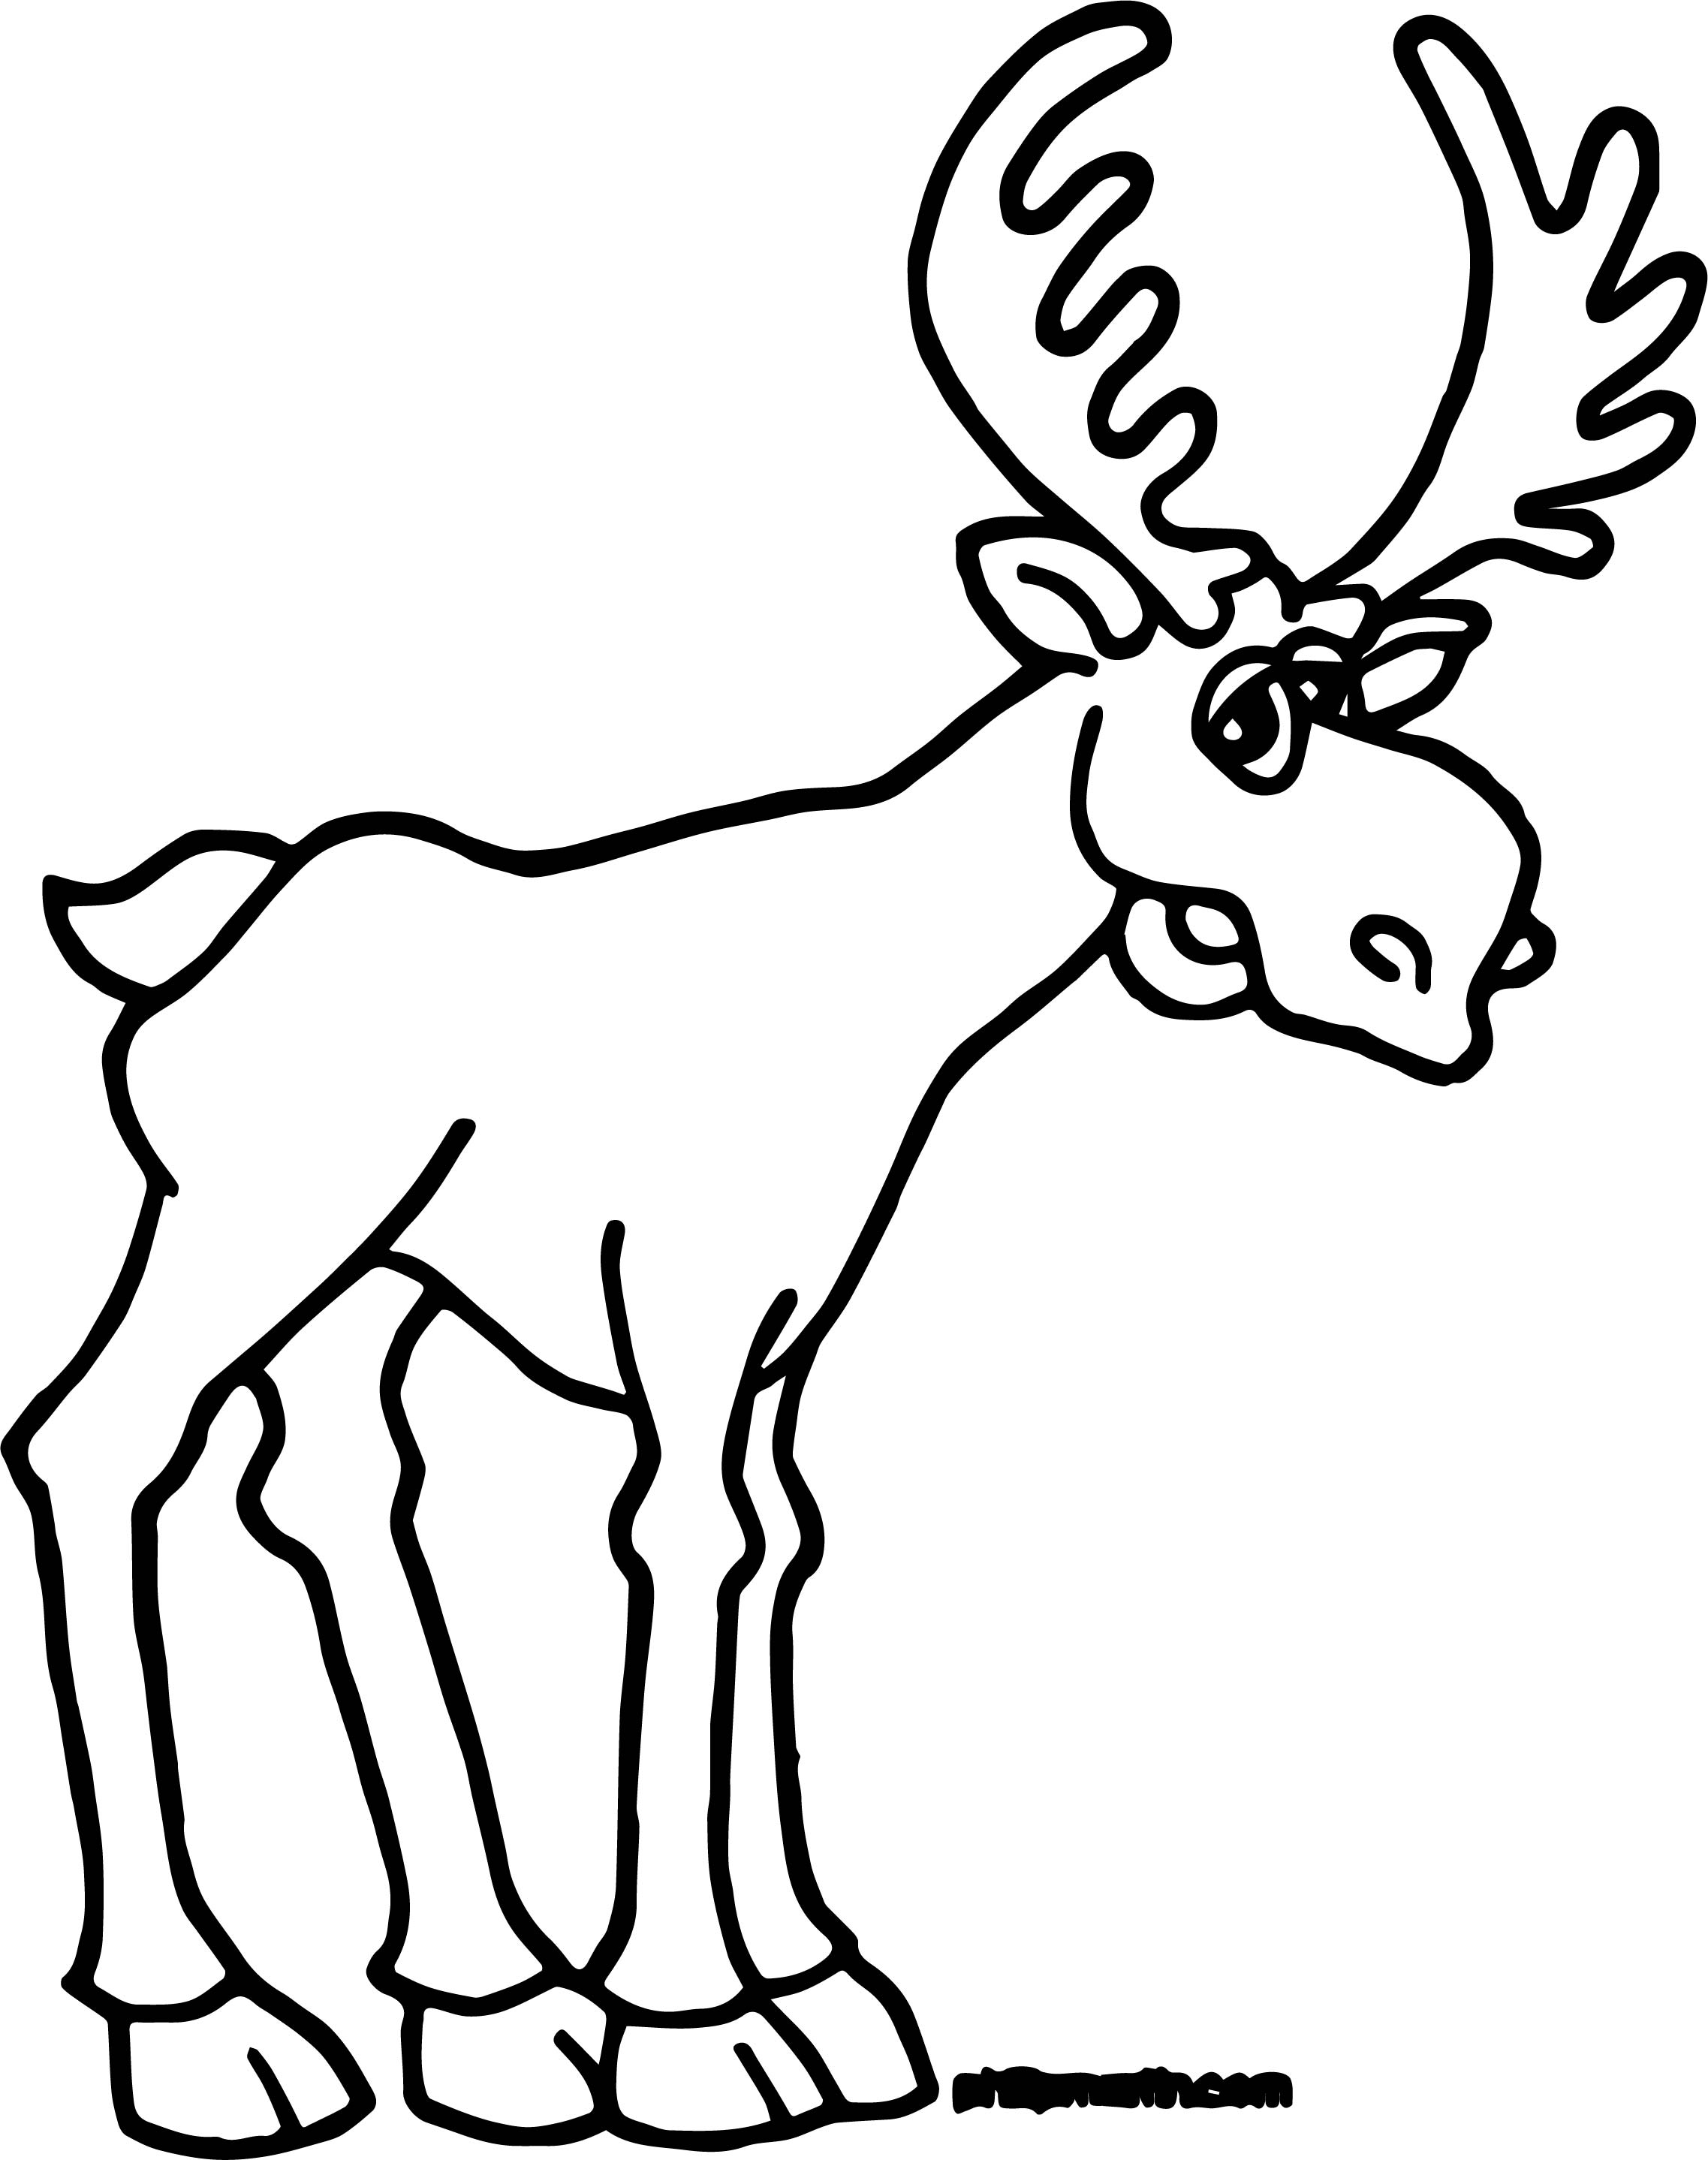 coloring pages moose - alaska moose coloring page